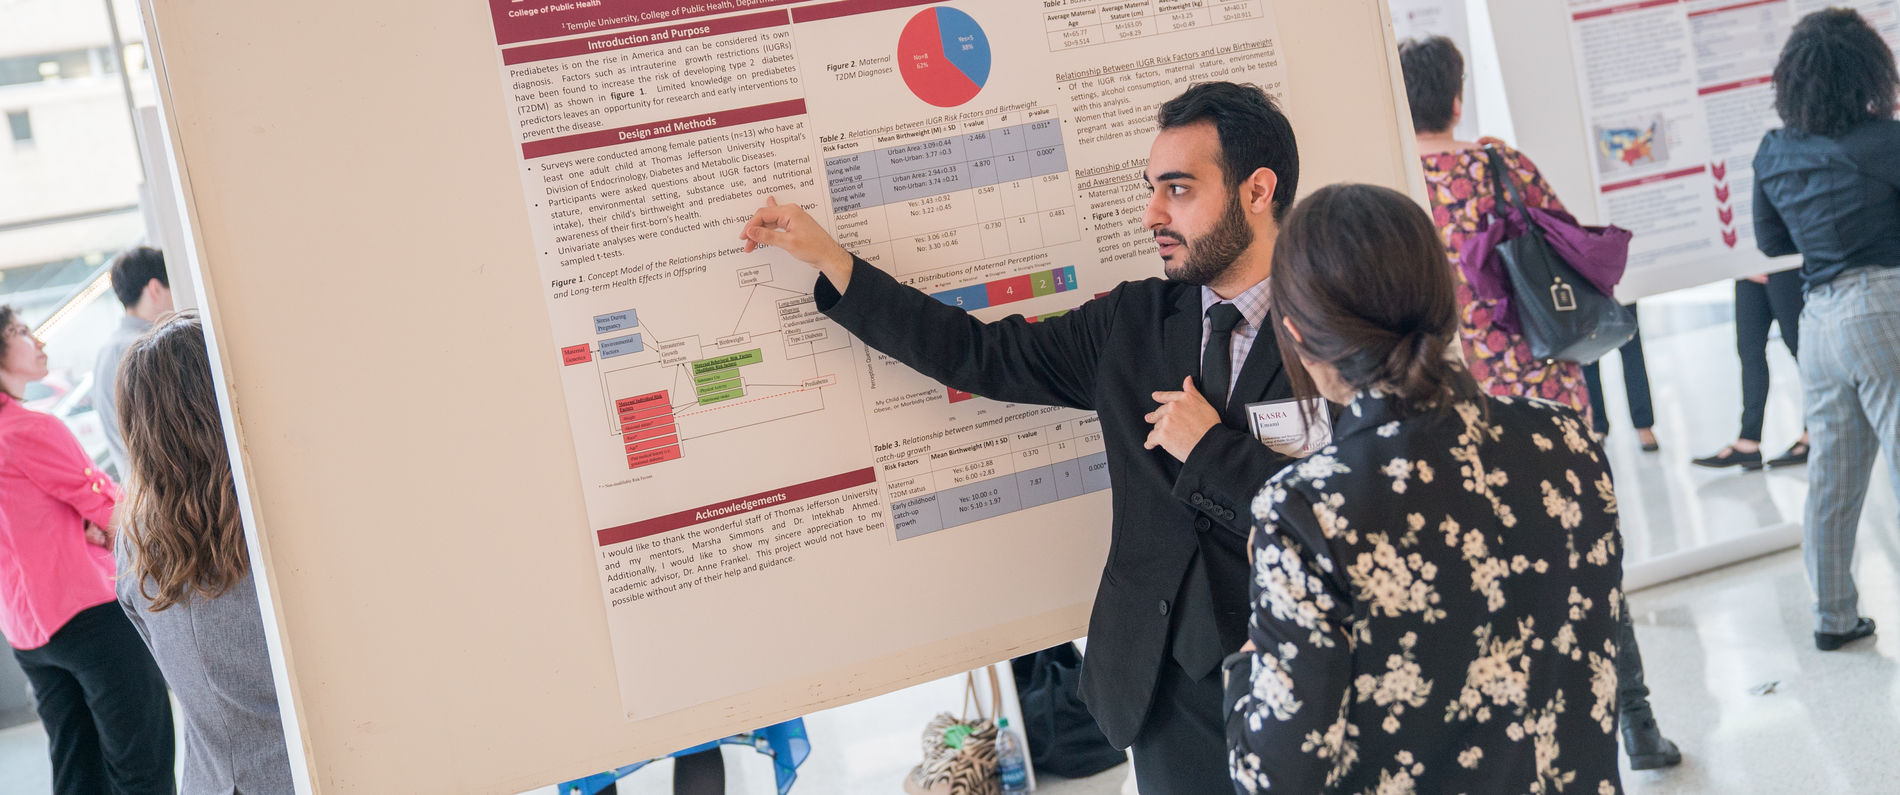 Man presenting his research poster